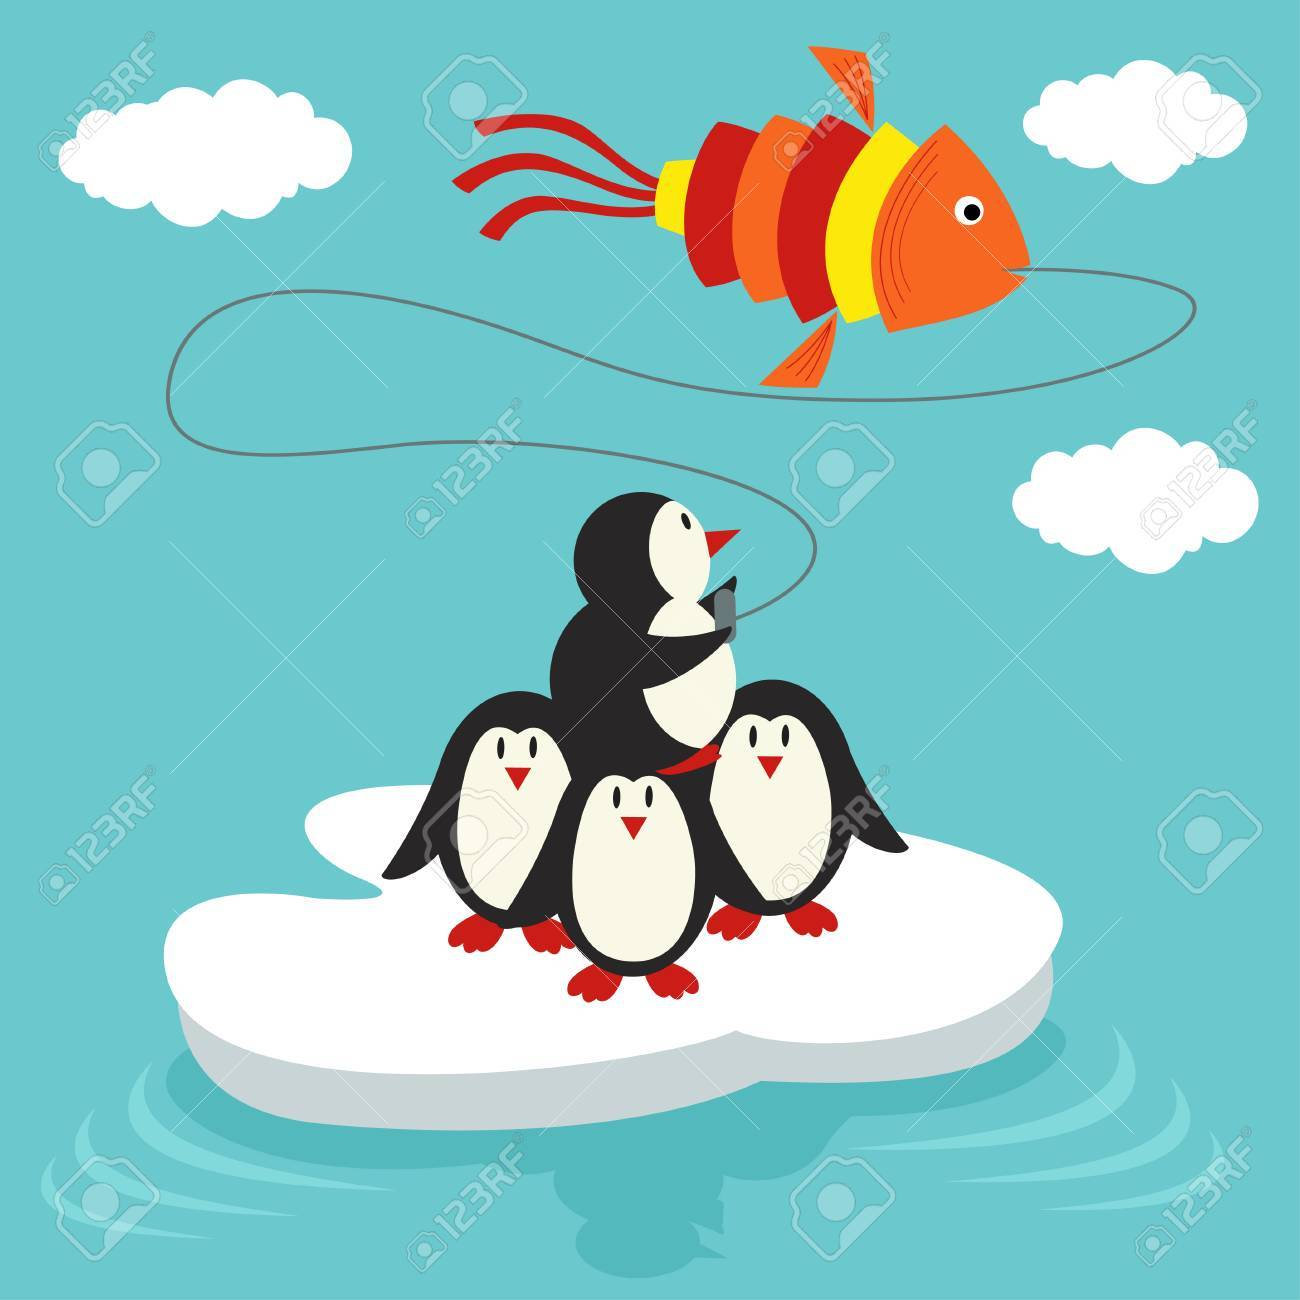 Official Club Penguin Online Wiki - Club Penguin Fishing Fish Clipart  (#5336713) - PinClipart